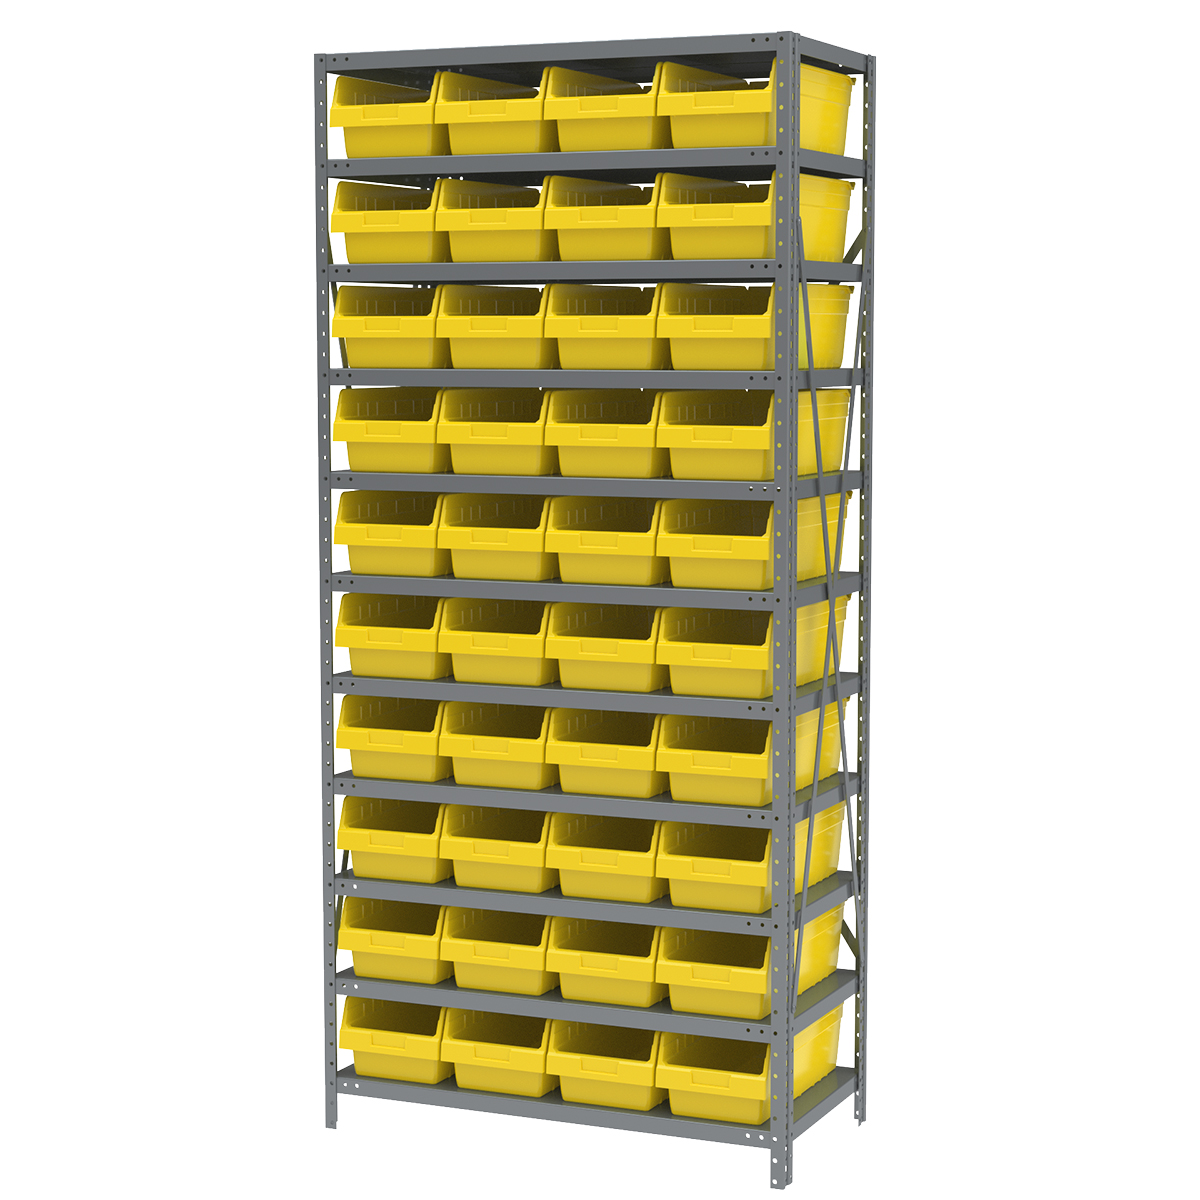 Steel Shelving Kit, 18x36x79, 40 Bins, Gray/Yellow.  This item sold in carton quantities of 1.